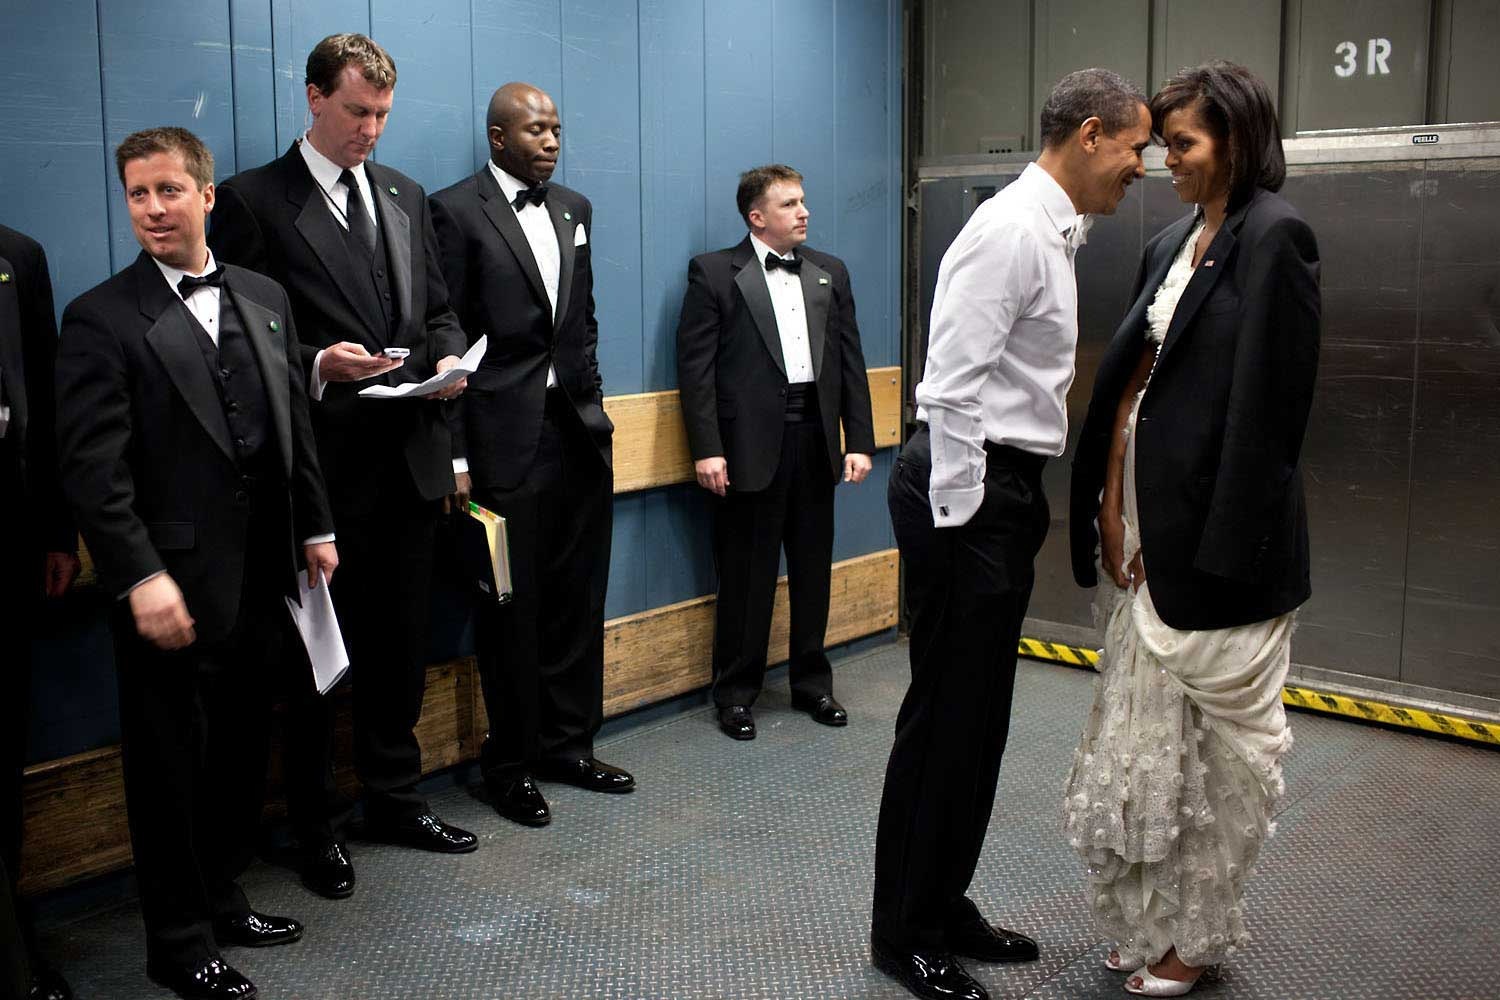 """We were on a freight elevator headed to one of the Inaugural balls on Jan. 20, 2009. It was quite chilly, so the President removed his tuxedo jacket and put it over the shoulders of his wife. Then they had a semi-private moment as staff members and Secret Service agents tried not to look."""